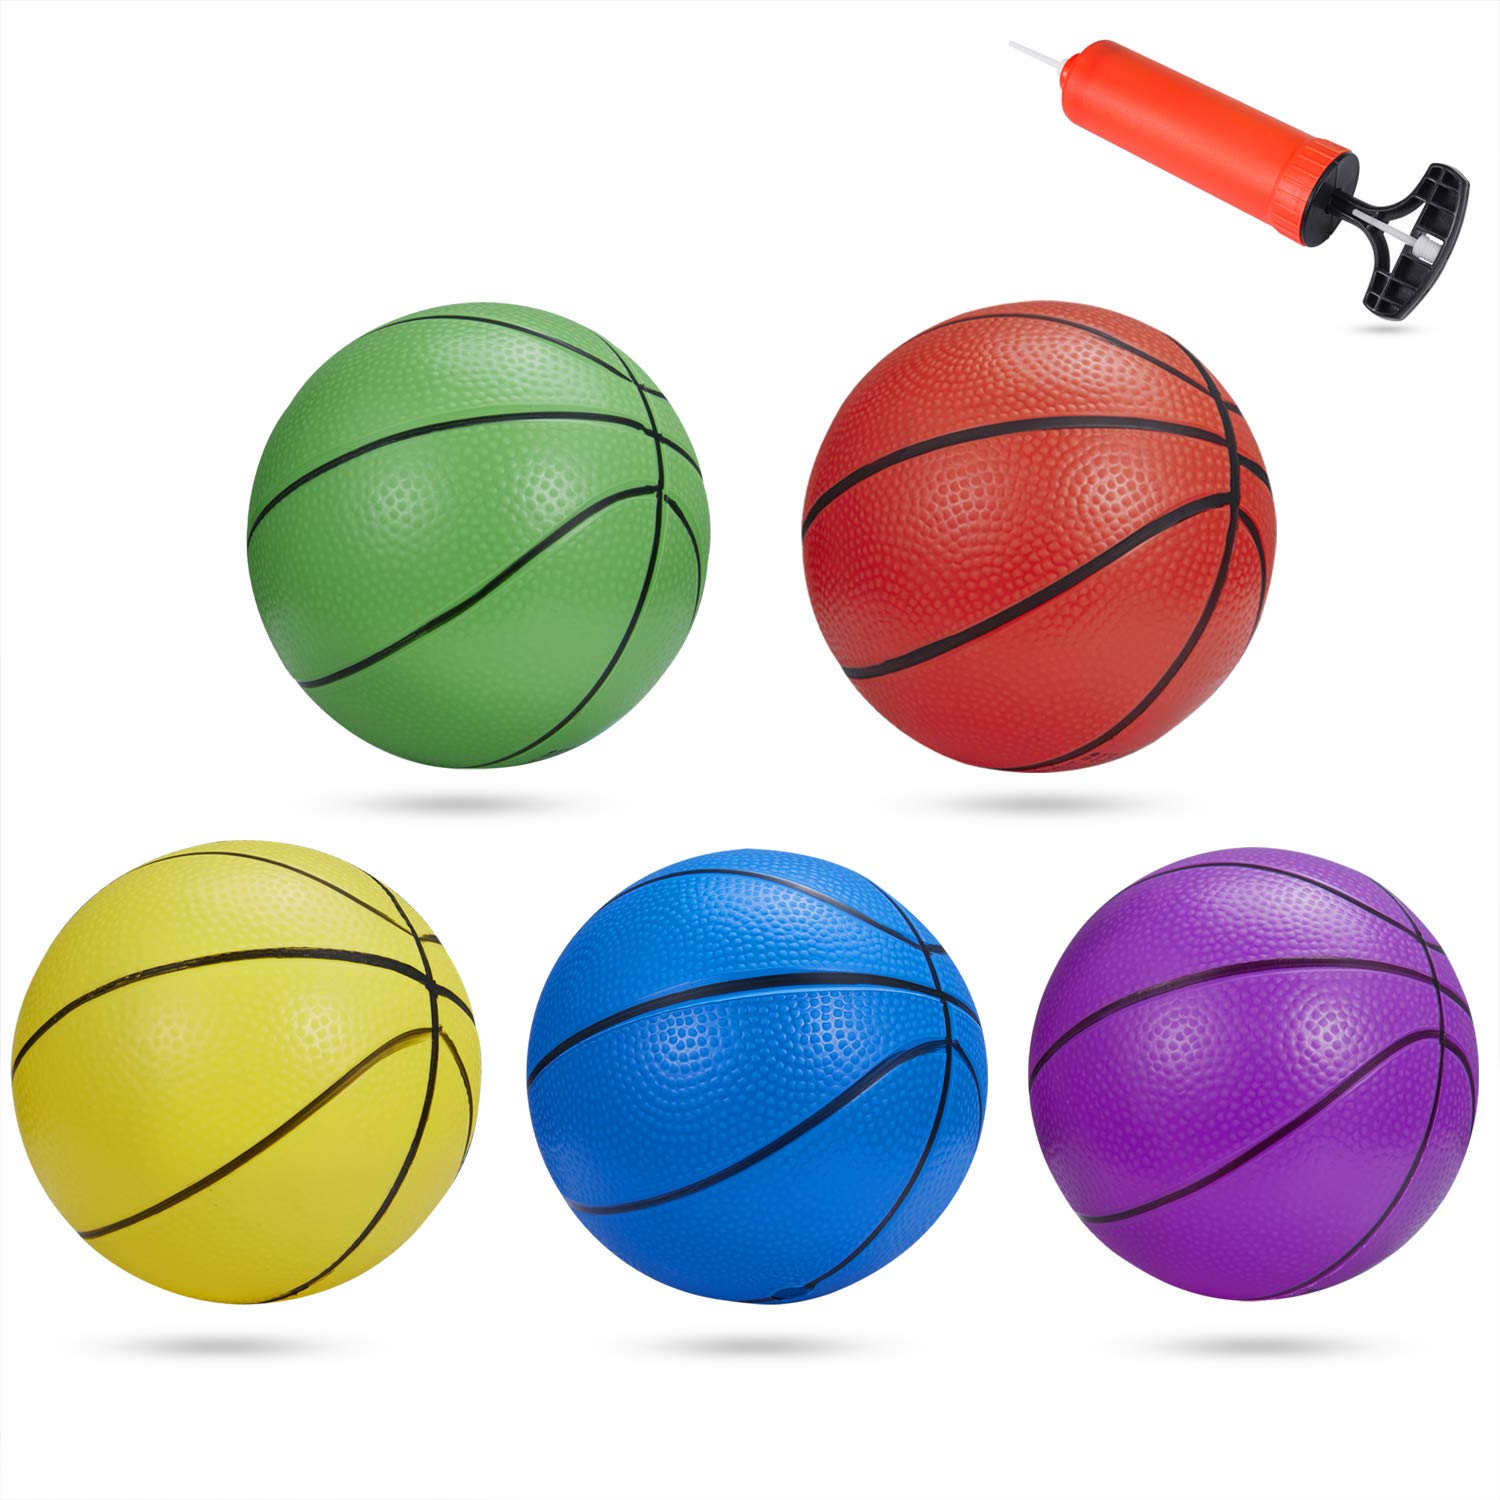 BESTTY 6 Inches Colorful Toddler Kids Replacement Mini Toy Basketball Rubber Baketball for Kids, Teenager Basketballs (5 PCS with 1 Air Pump) by BESTTY